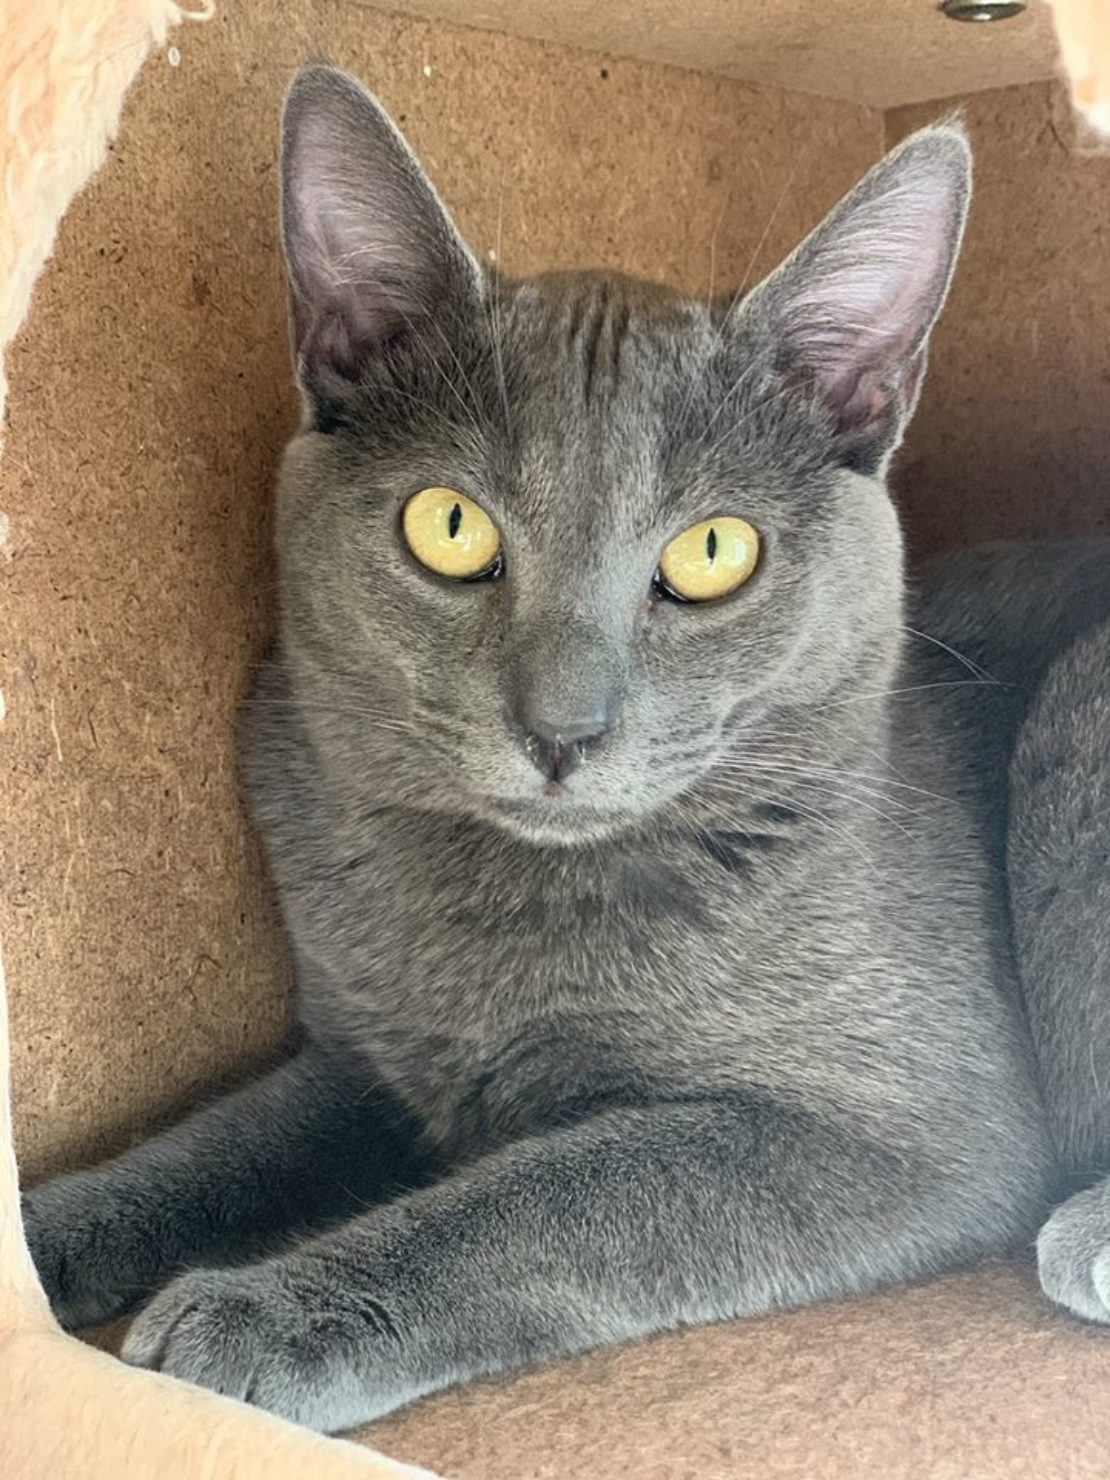 steel-gray cat staring into camera